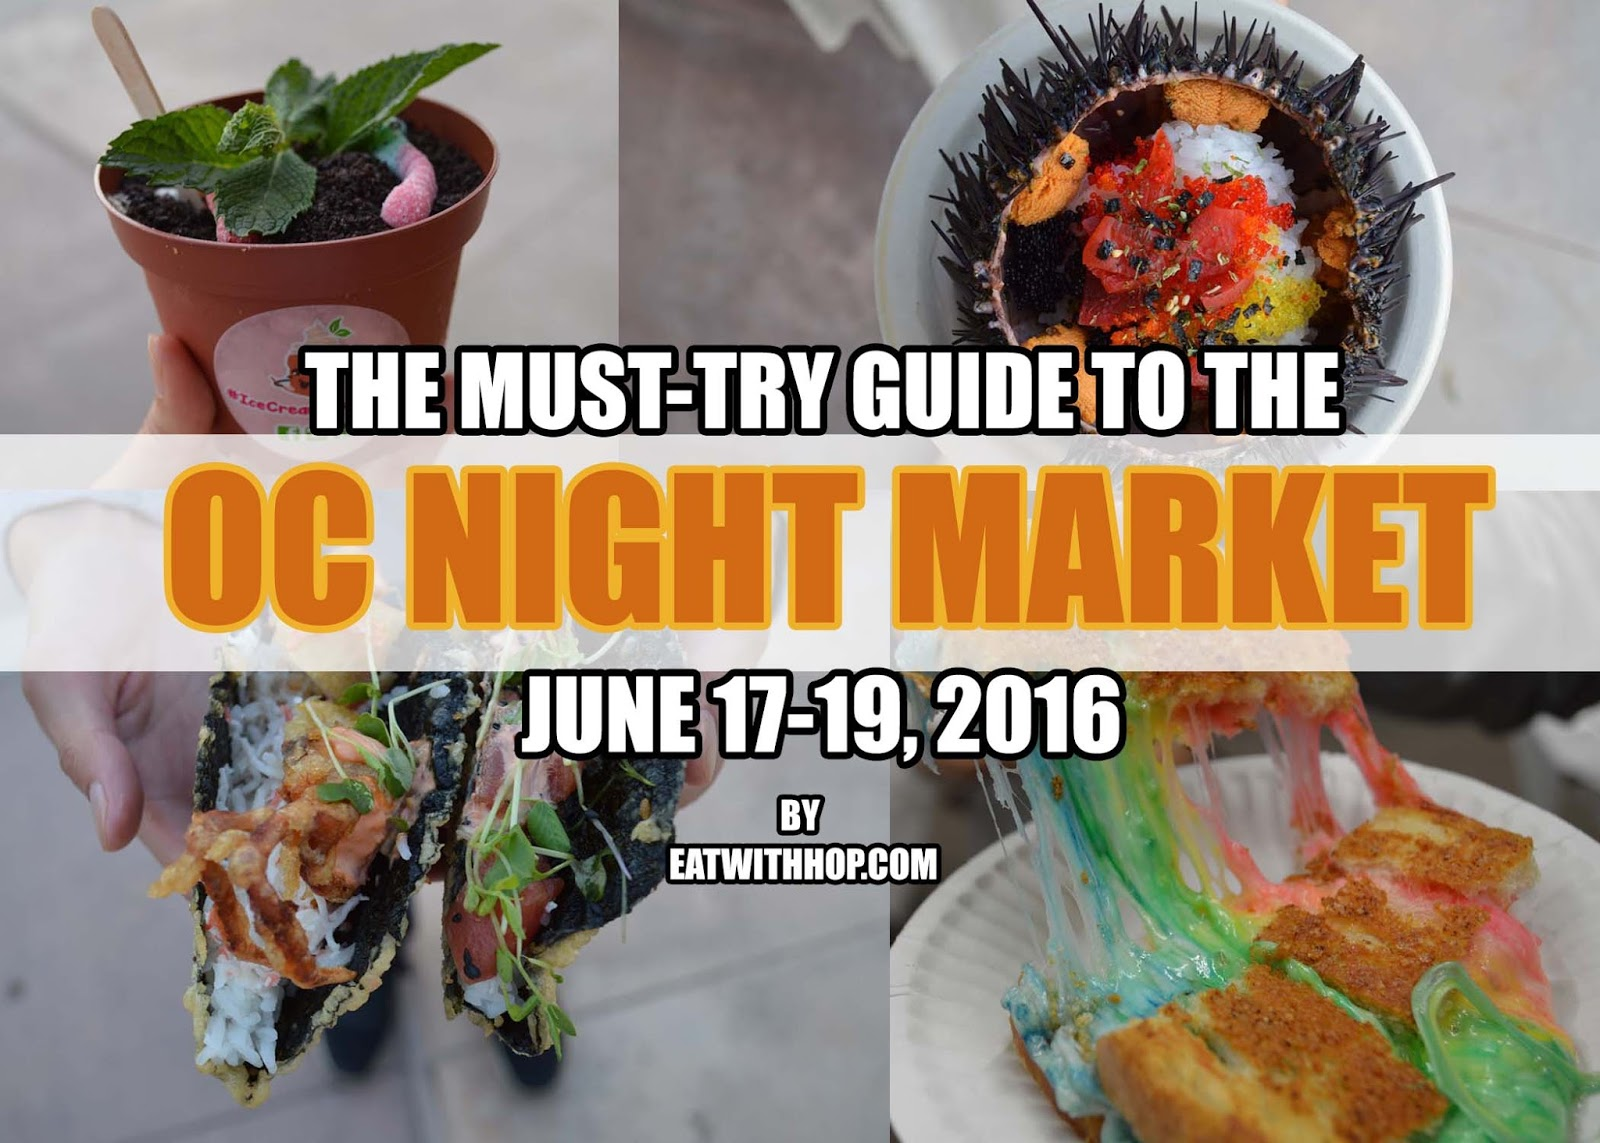 THE MUST-TRY GUIDE TO THE OC NIGHT MARKET THIS JUNE 17-19